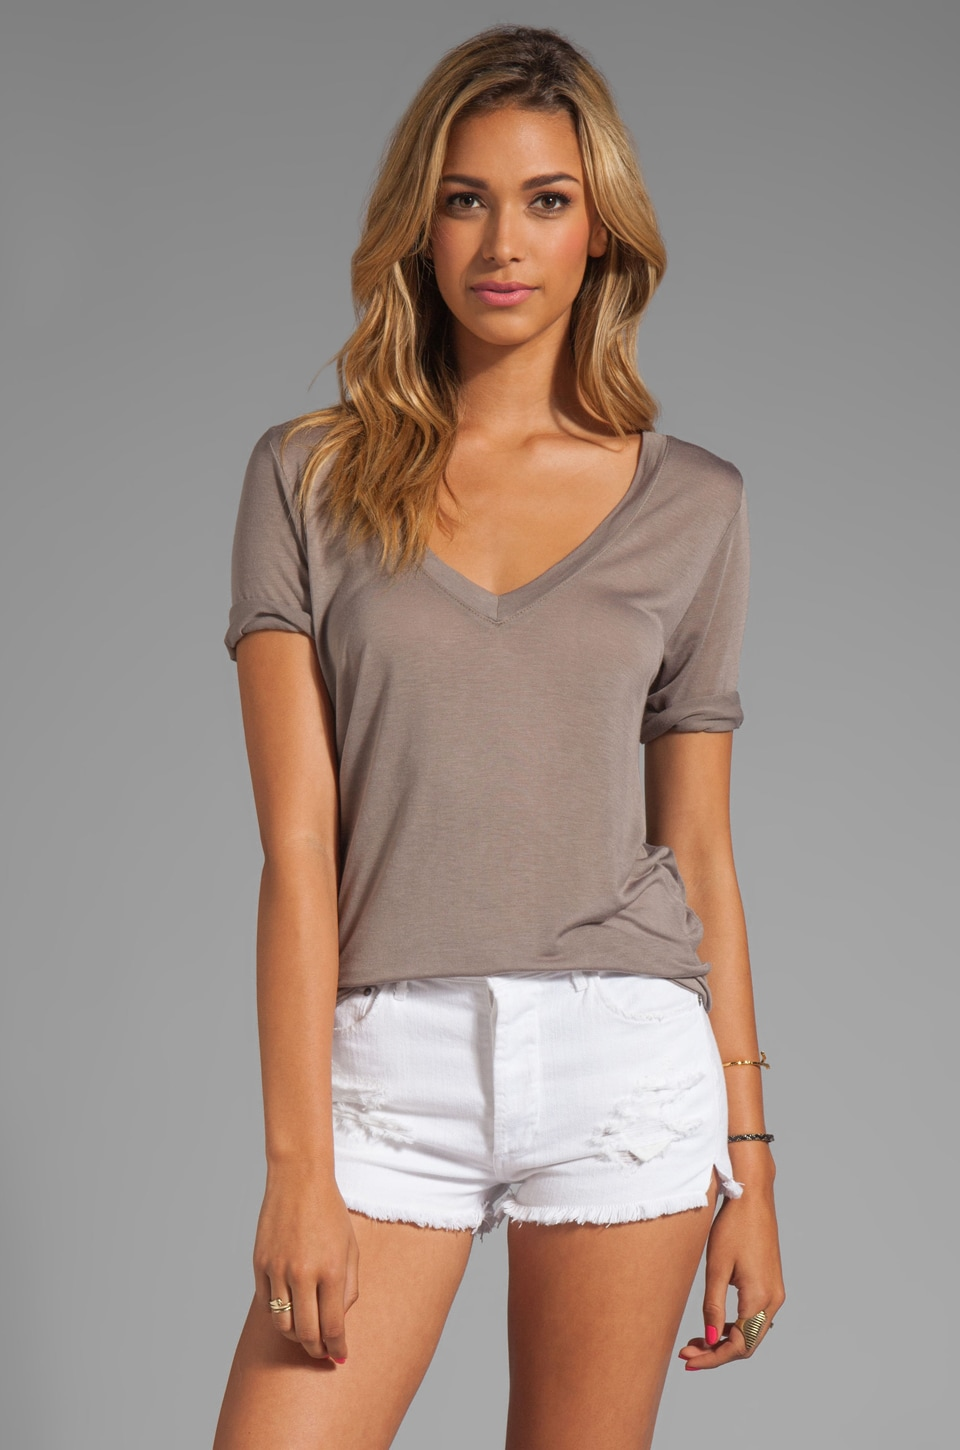 Feel the Piece Best Friend V-Neck Tee in Taupe